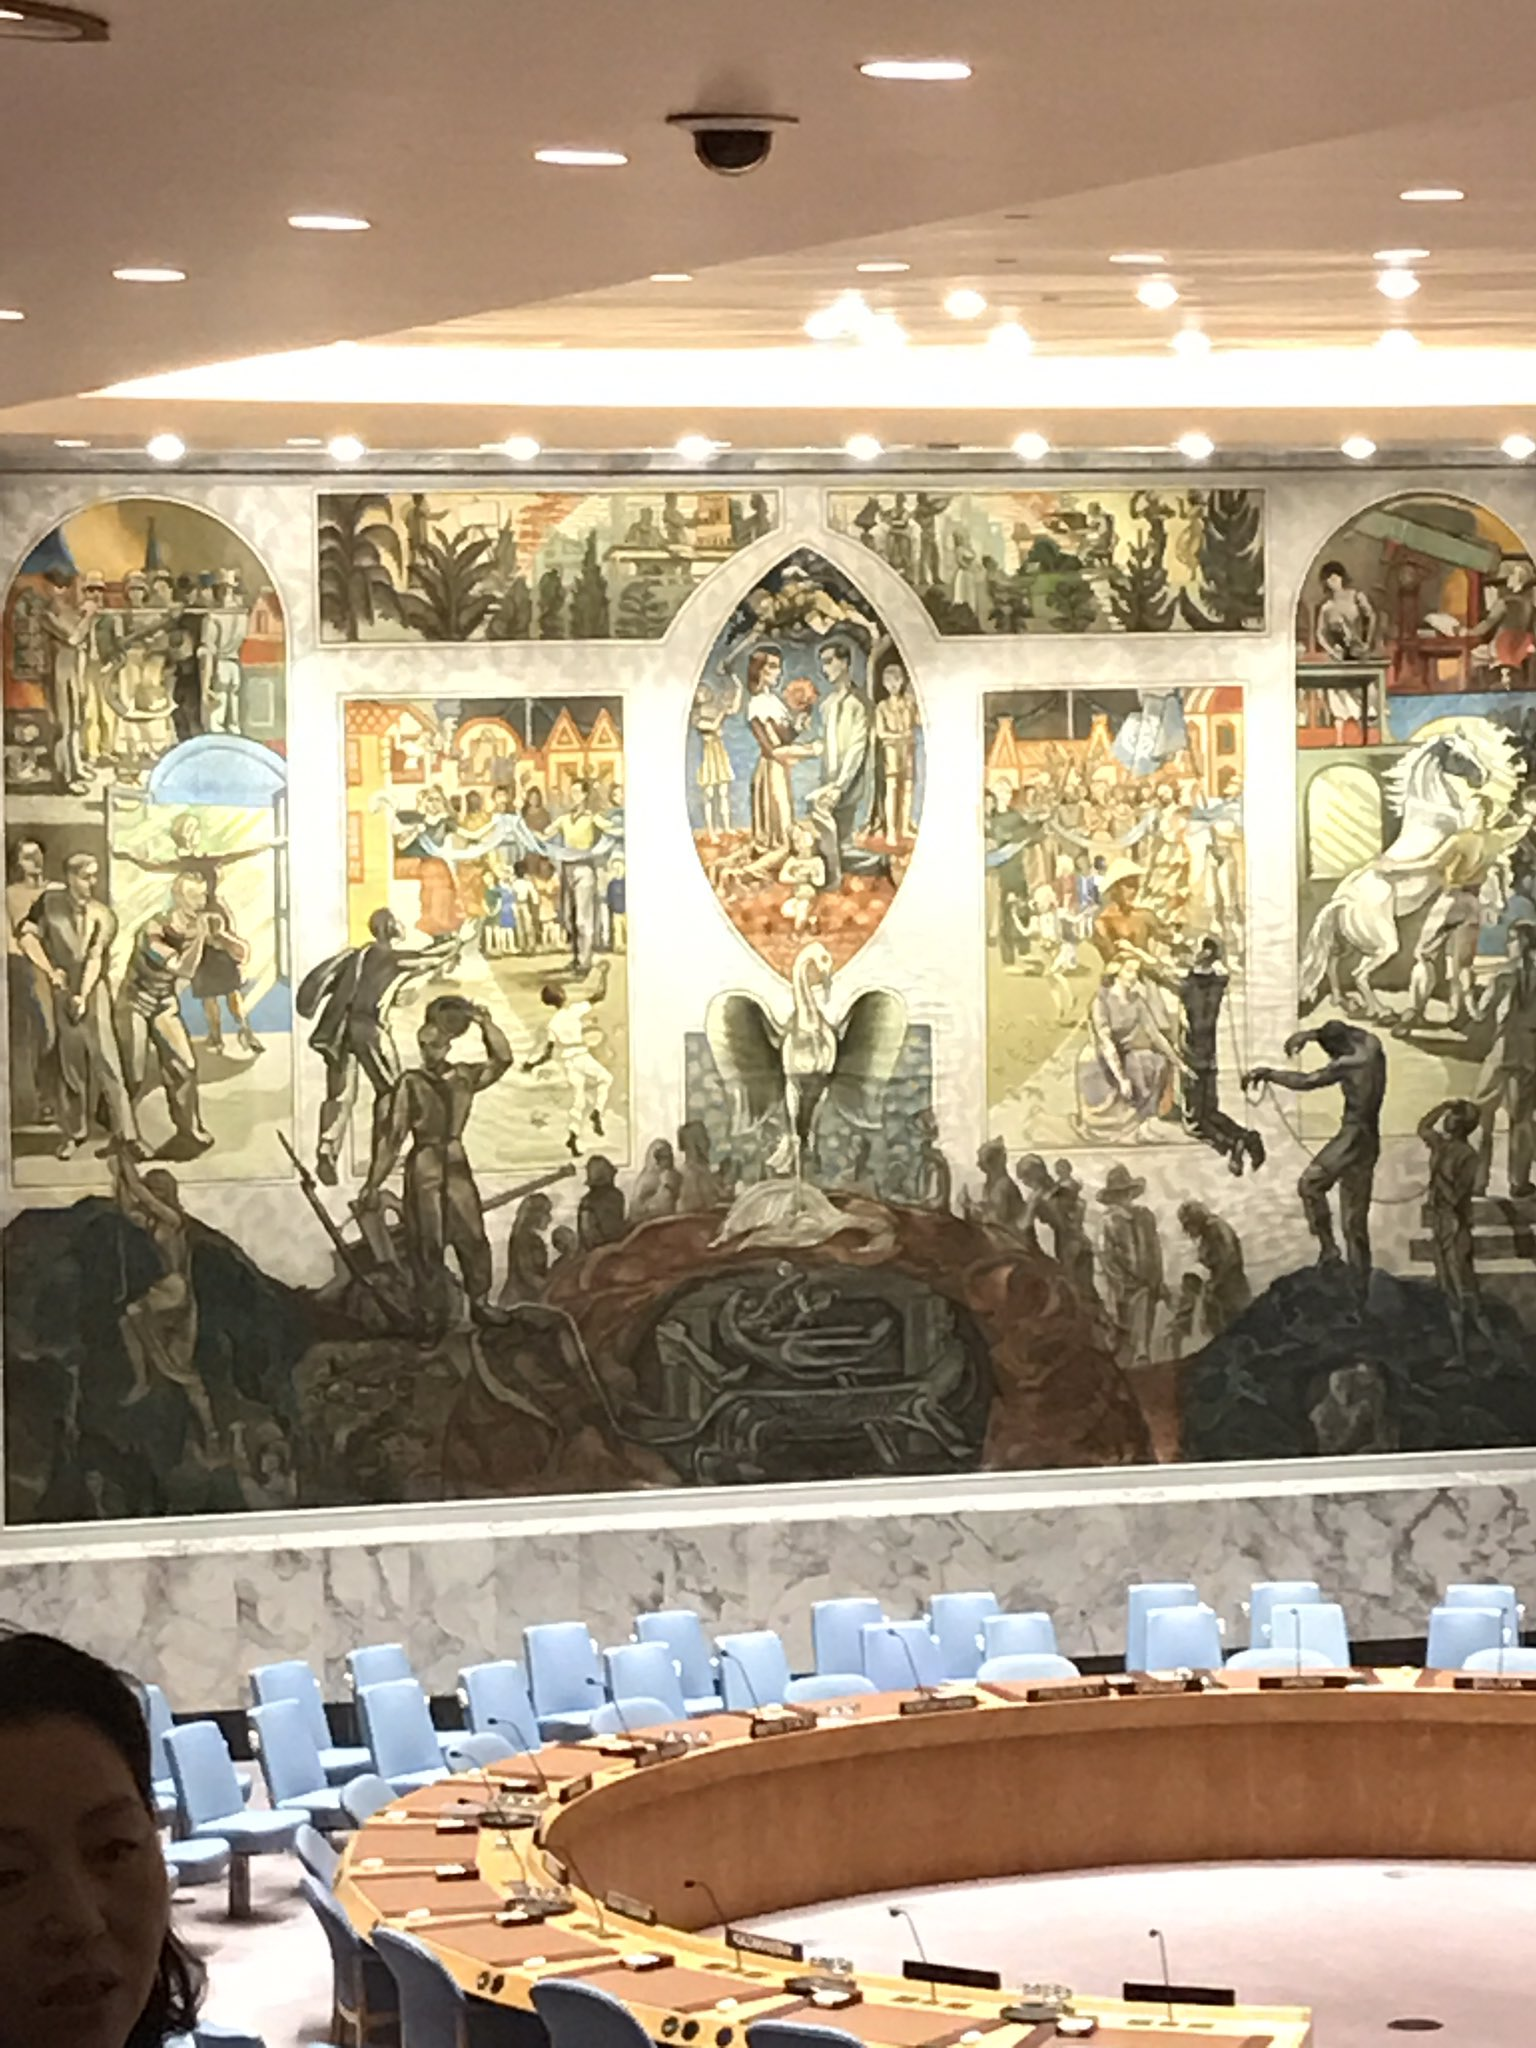 The mural is a guy from #Norway- nite the symbolic Phoenix in the center. #UnitedNations https://t.co/qjBpqe2aFP